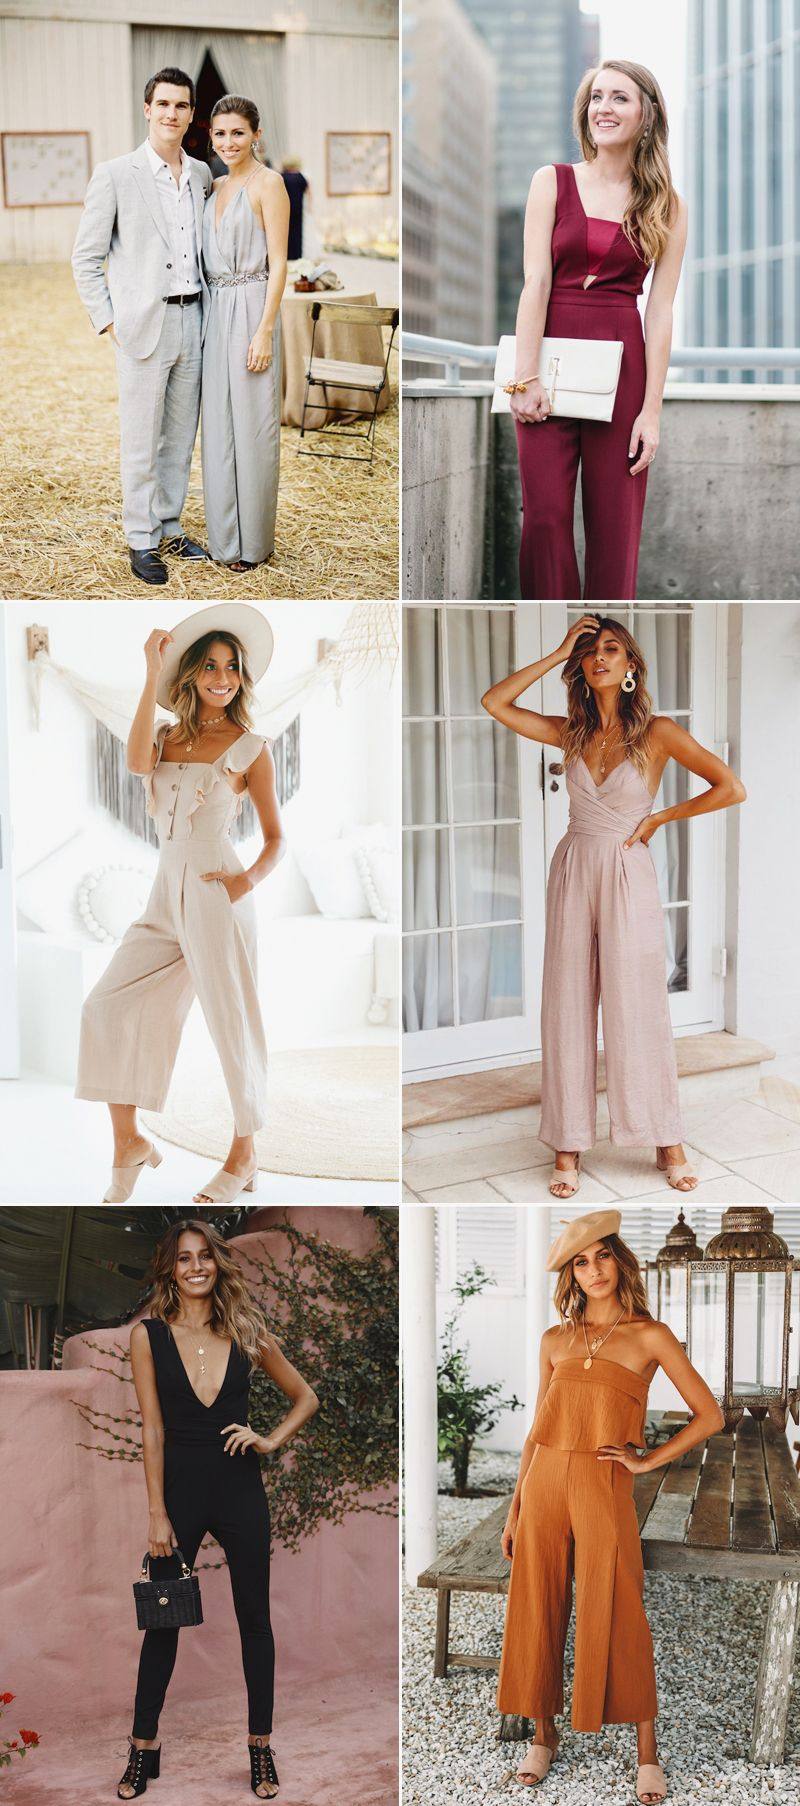 Wedding guest attire the top hot trends for summer weddings this